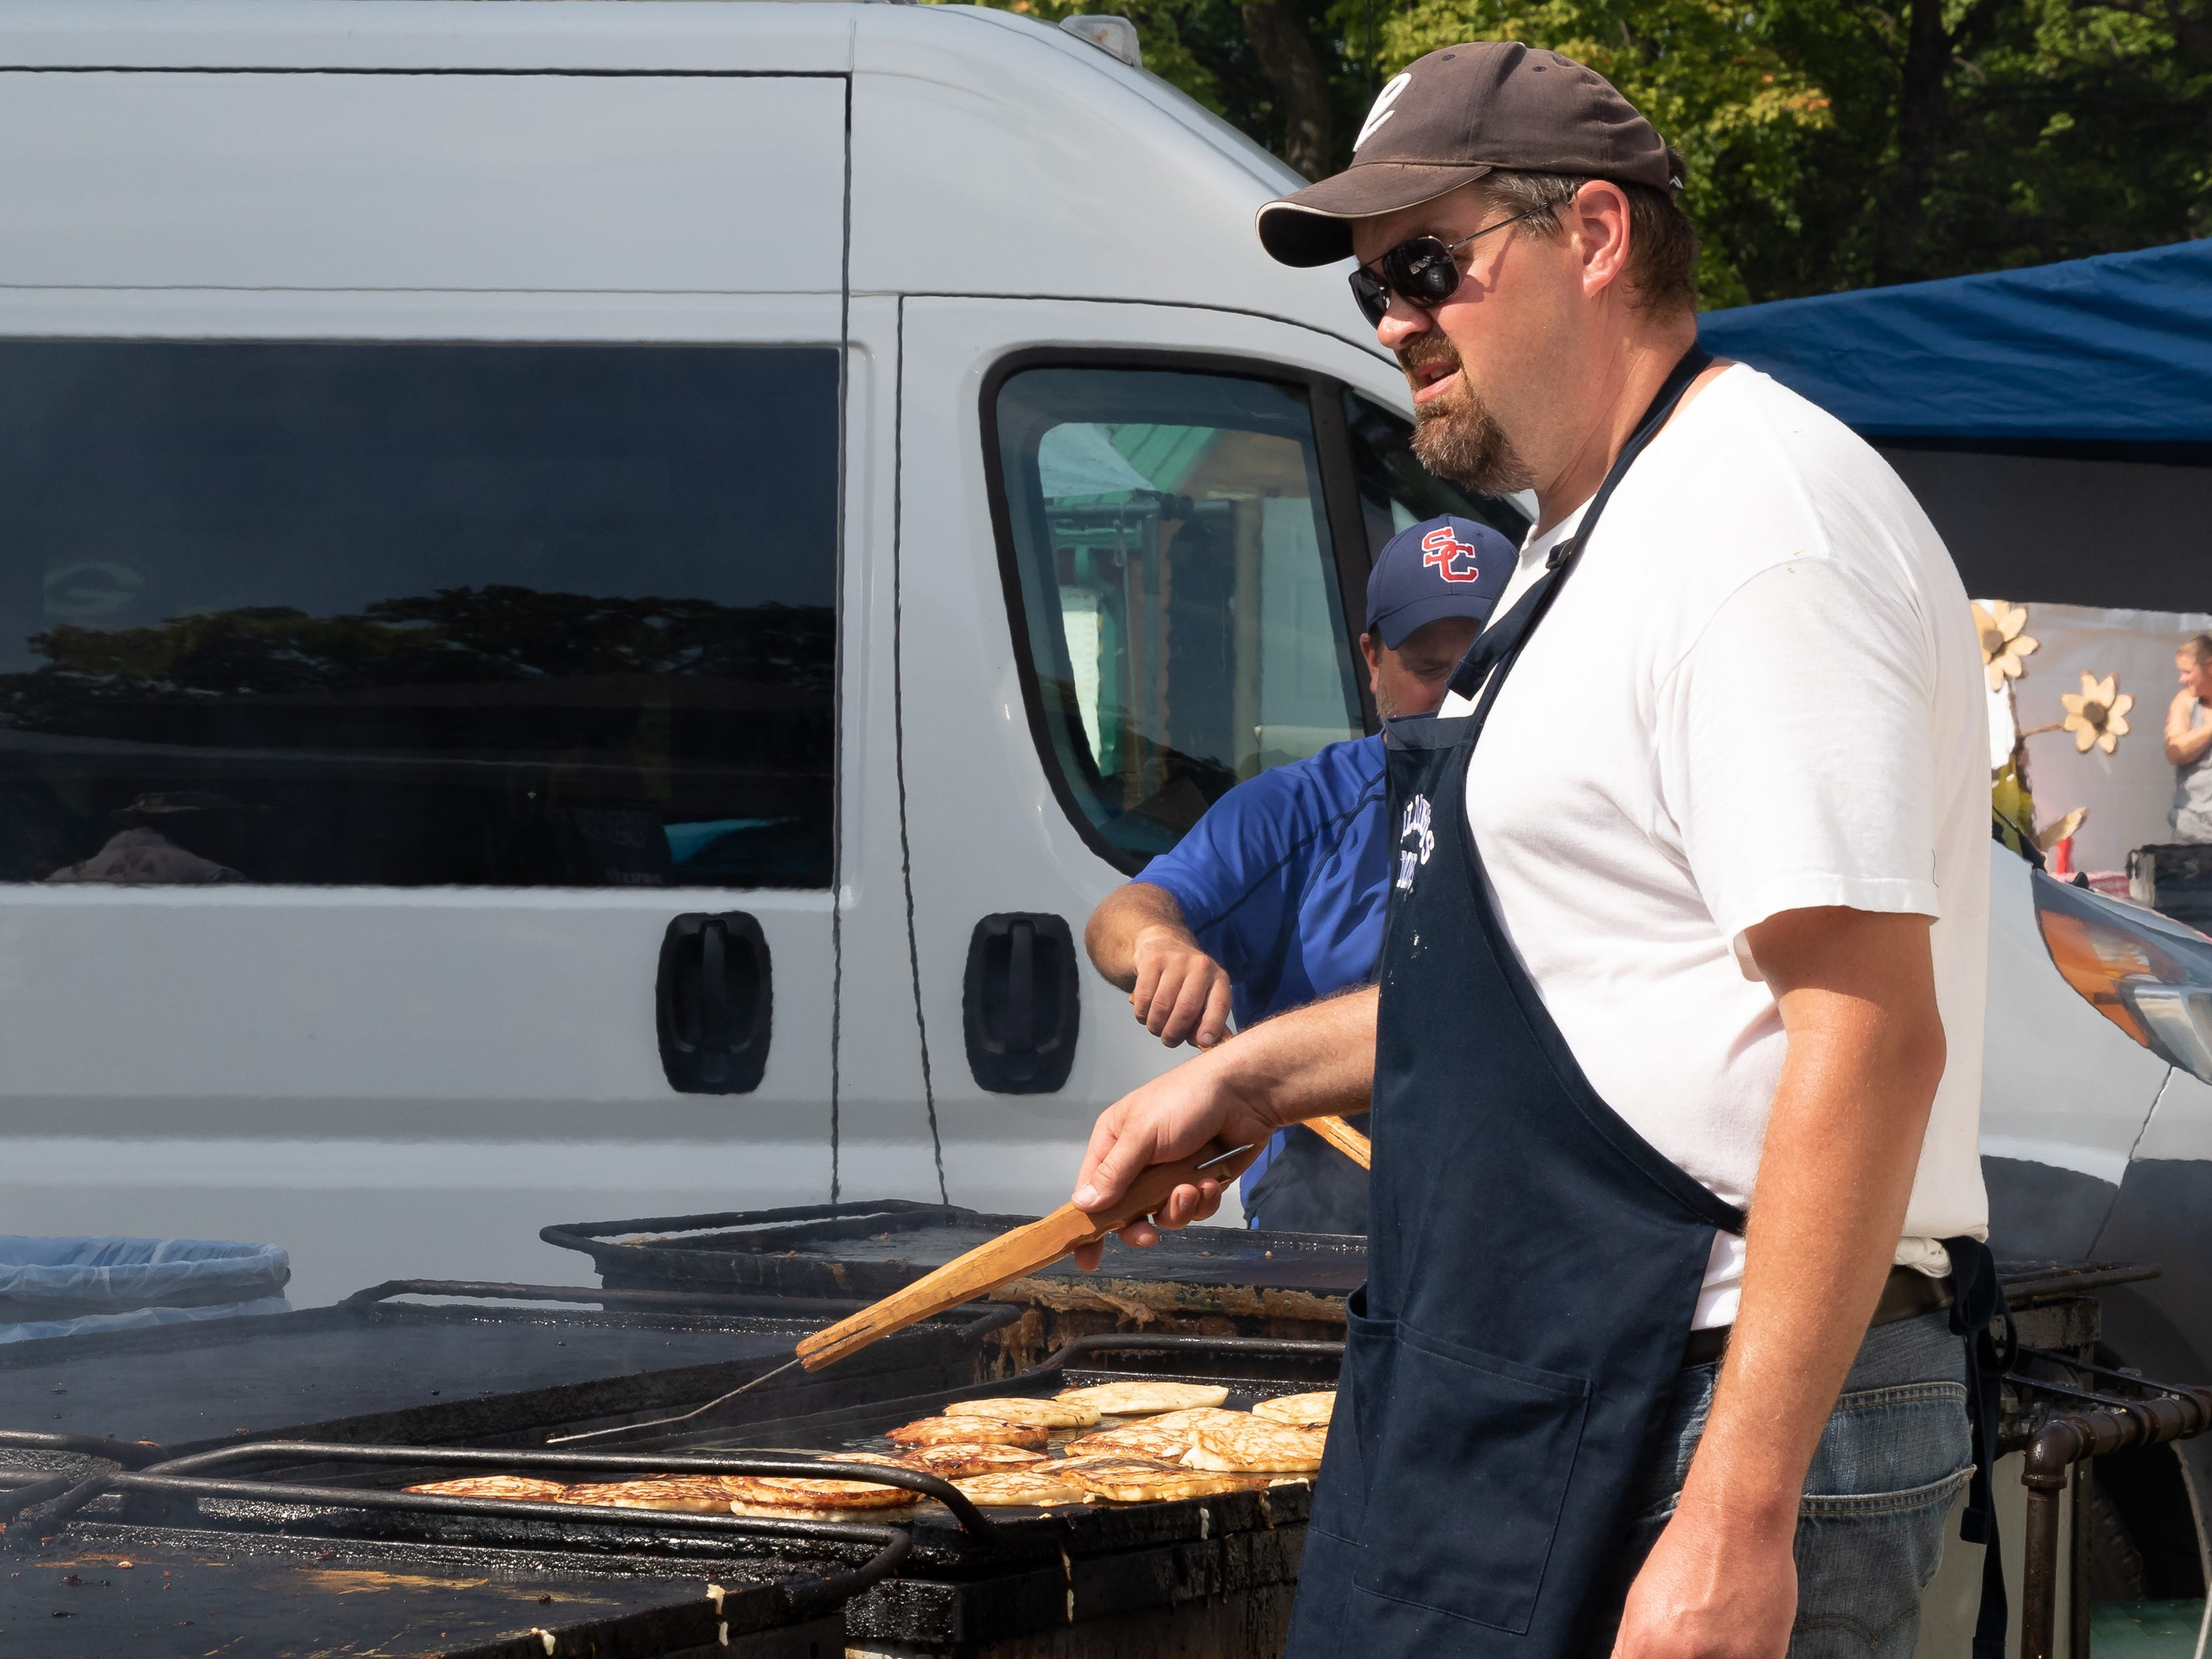 Pancakes are on the griddle during Maple Fall Fest on Sunday, Sept. 16, 2018, at Wildwood Park in Marshfield.